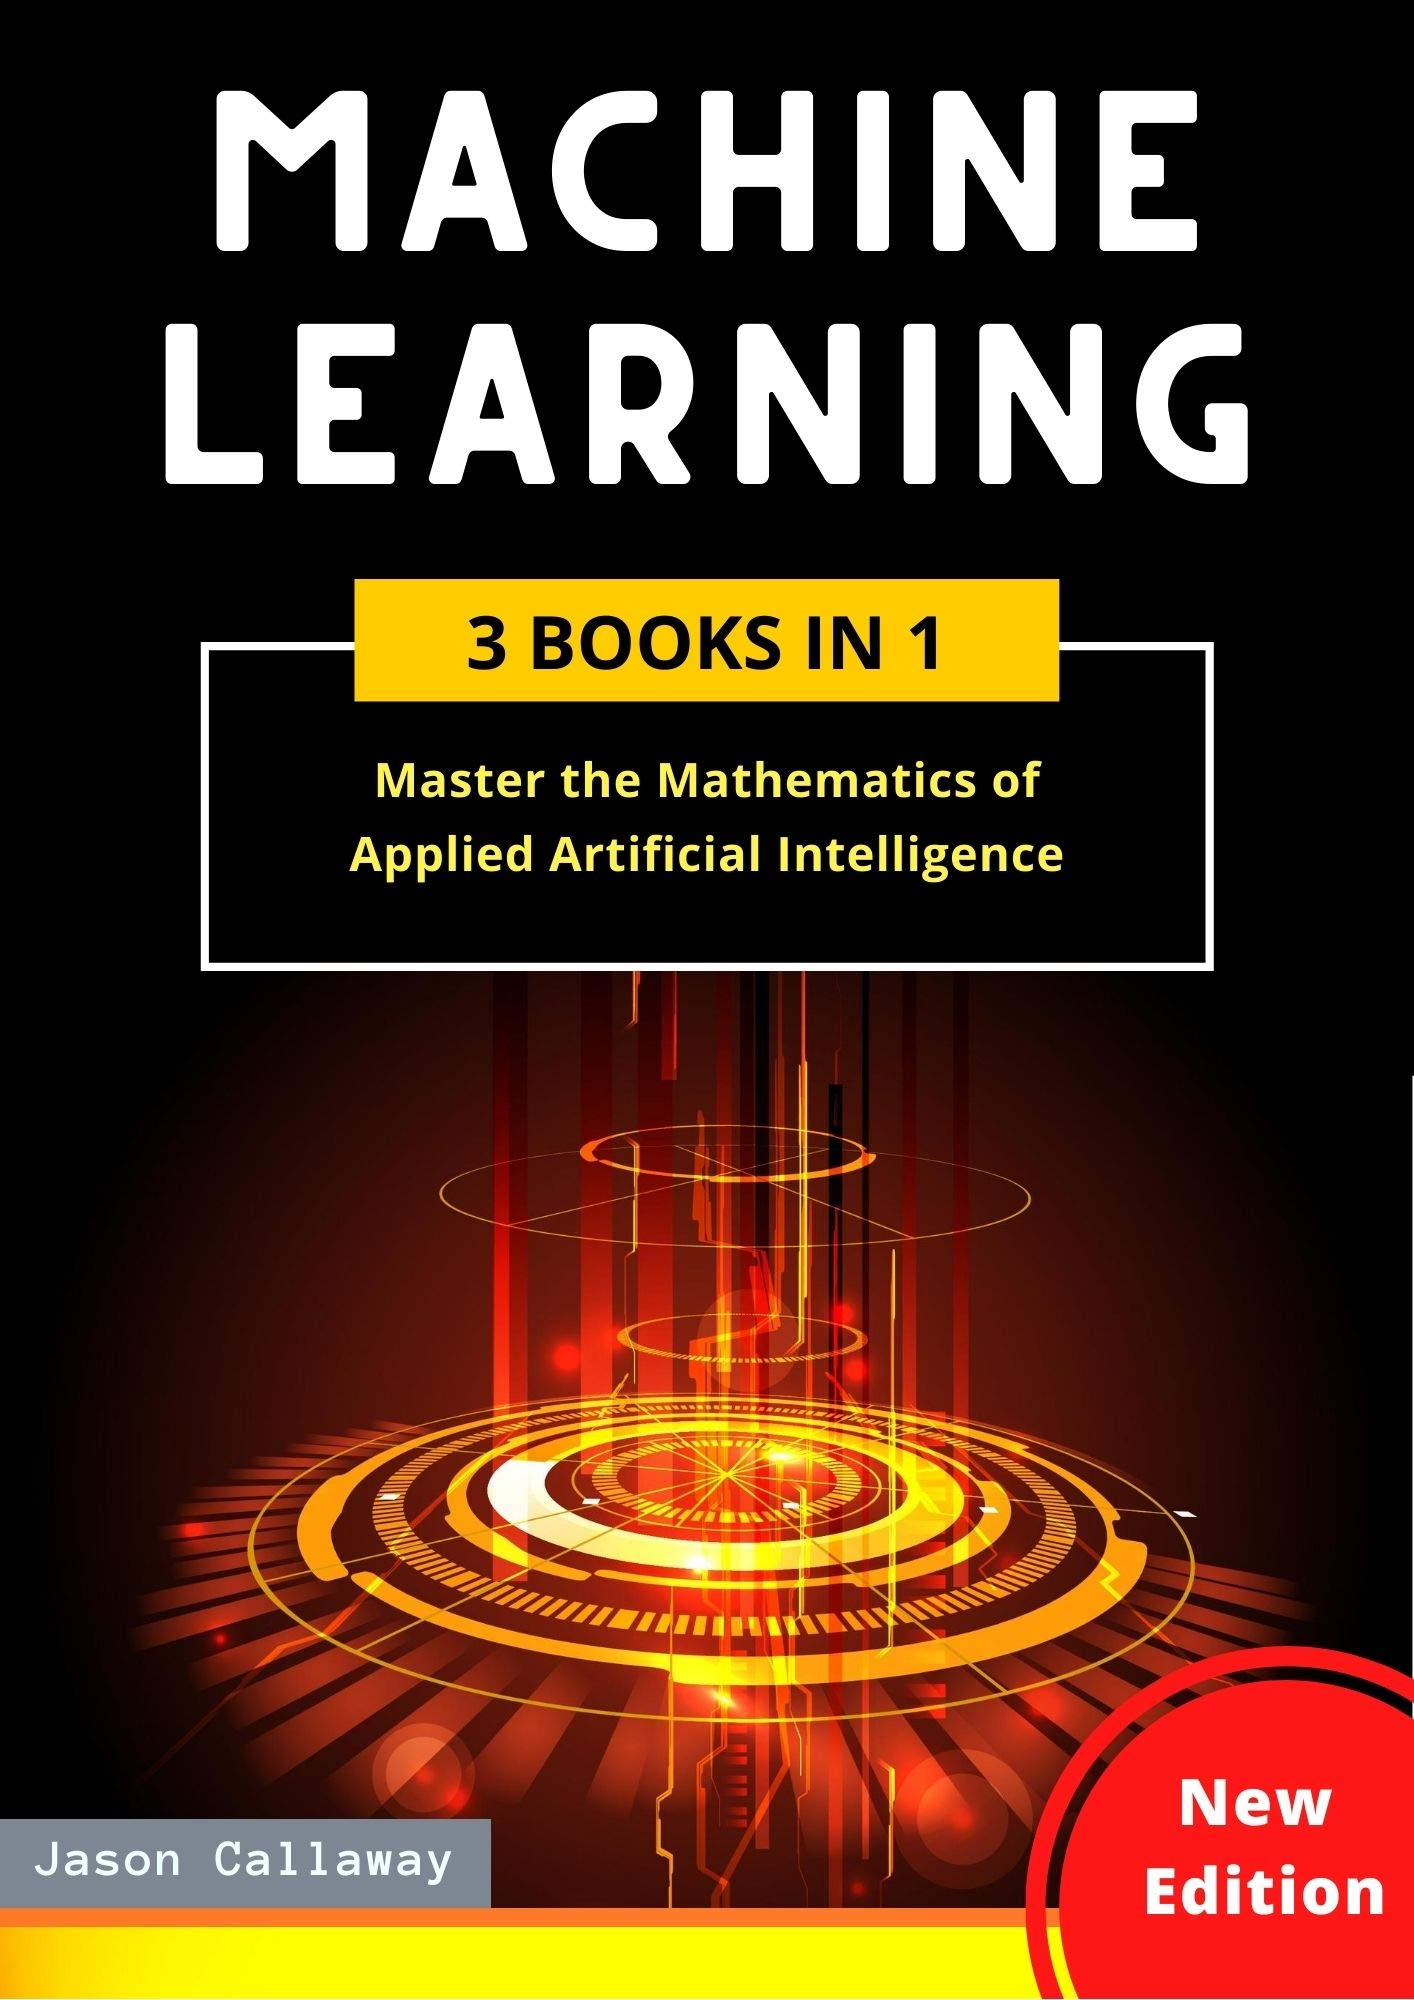 MACHINE LEARNING: 3 Books in 1: Master the Mathematics of Applied Artificial Intelligence and Learn the Secrets of Python Programming, Data Science, and Computer Networking